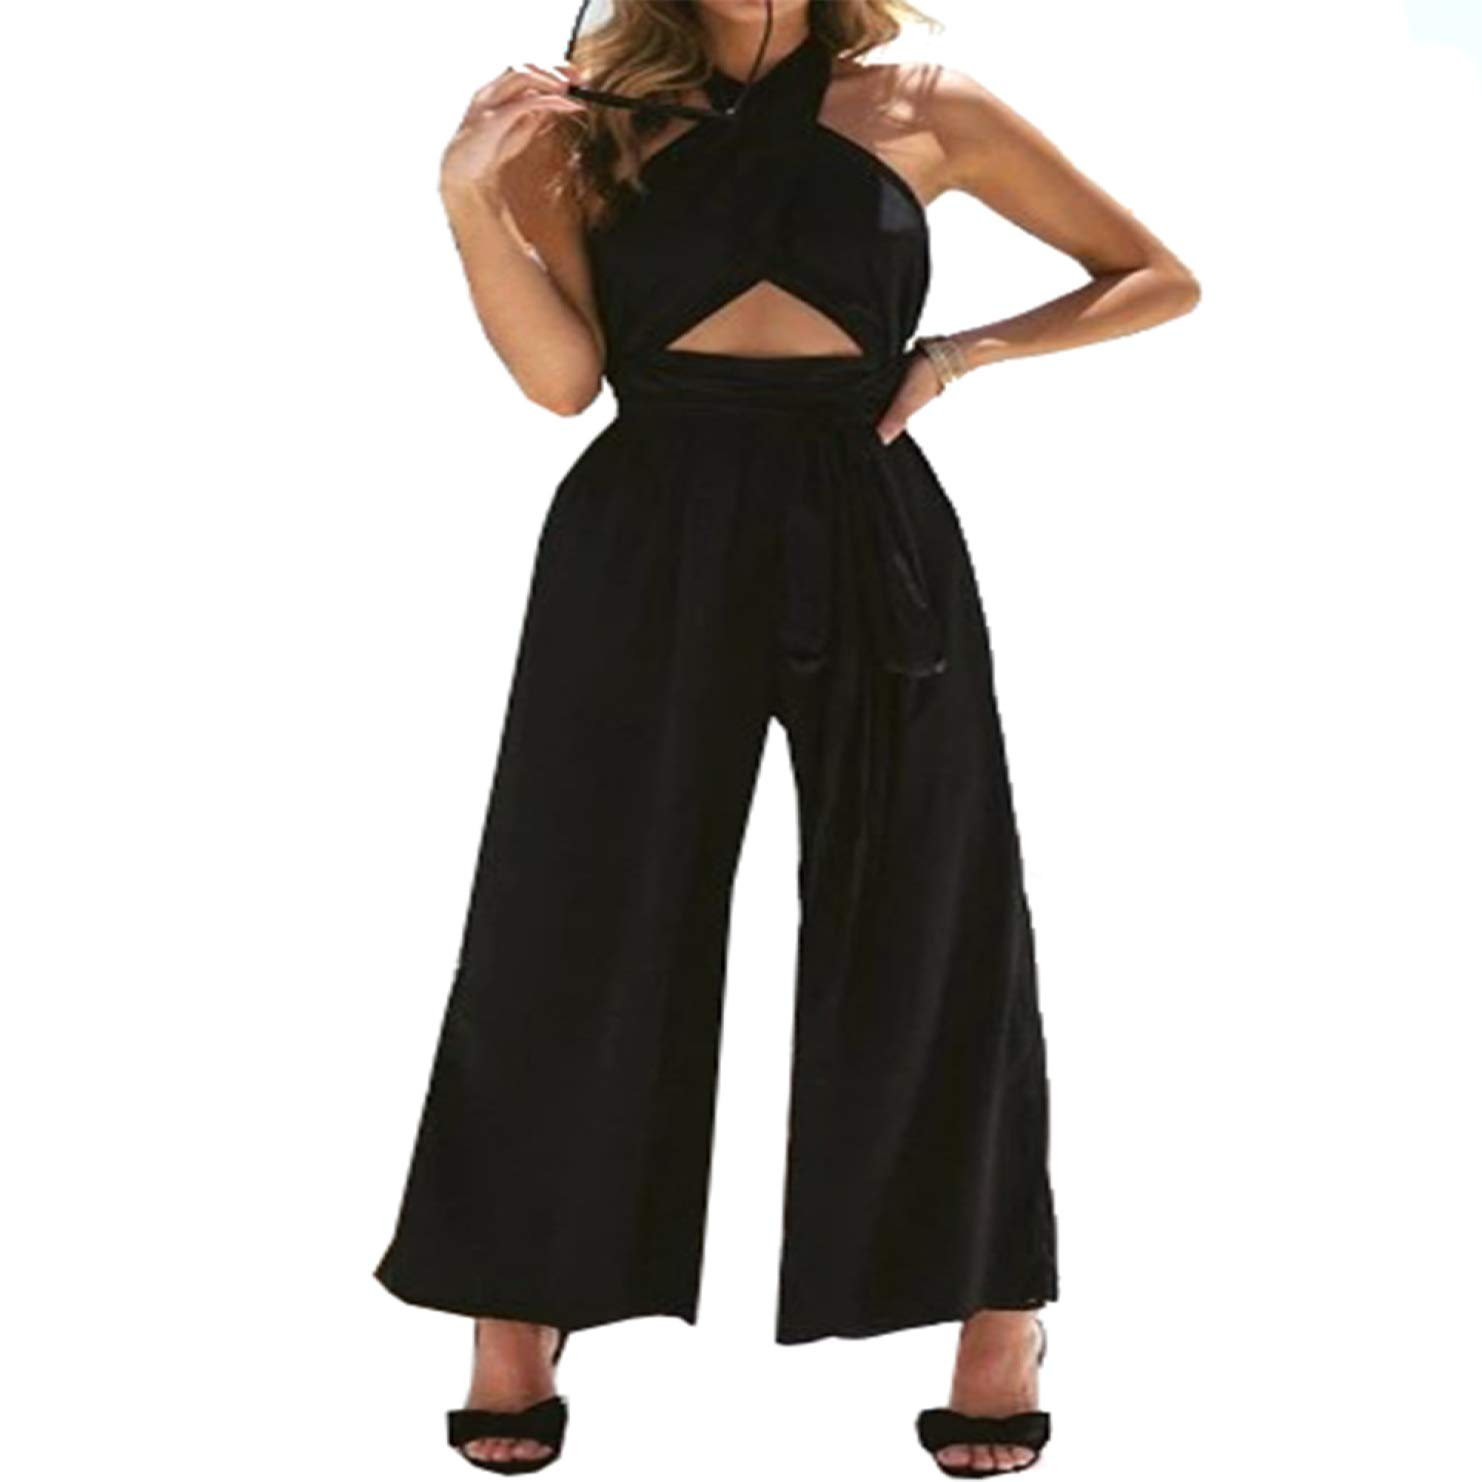 Absinthe First-Class New Cross-Necked Backless Wide Leg Jumpsuit Rompers